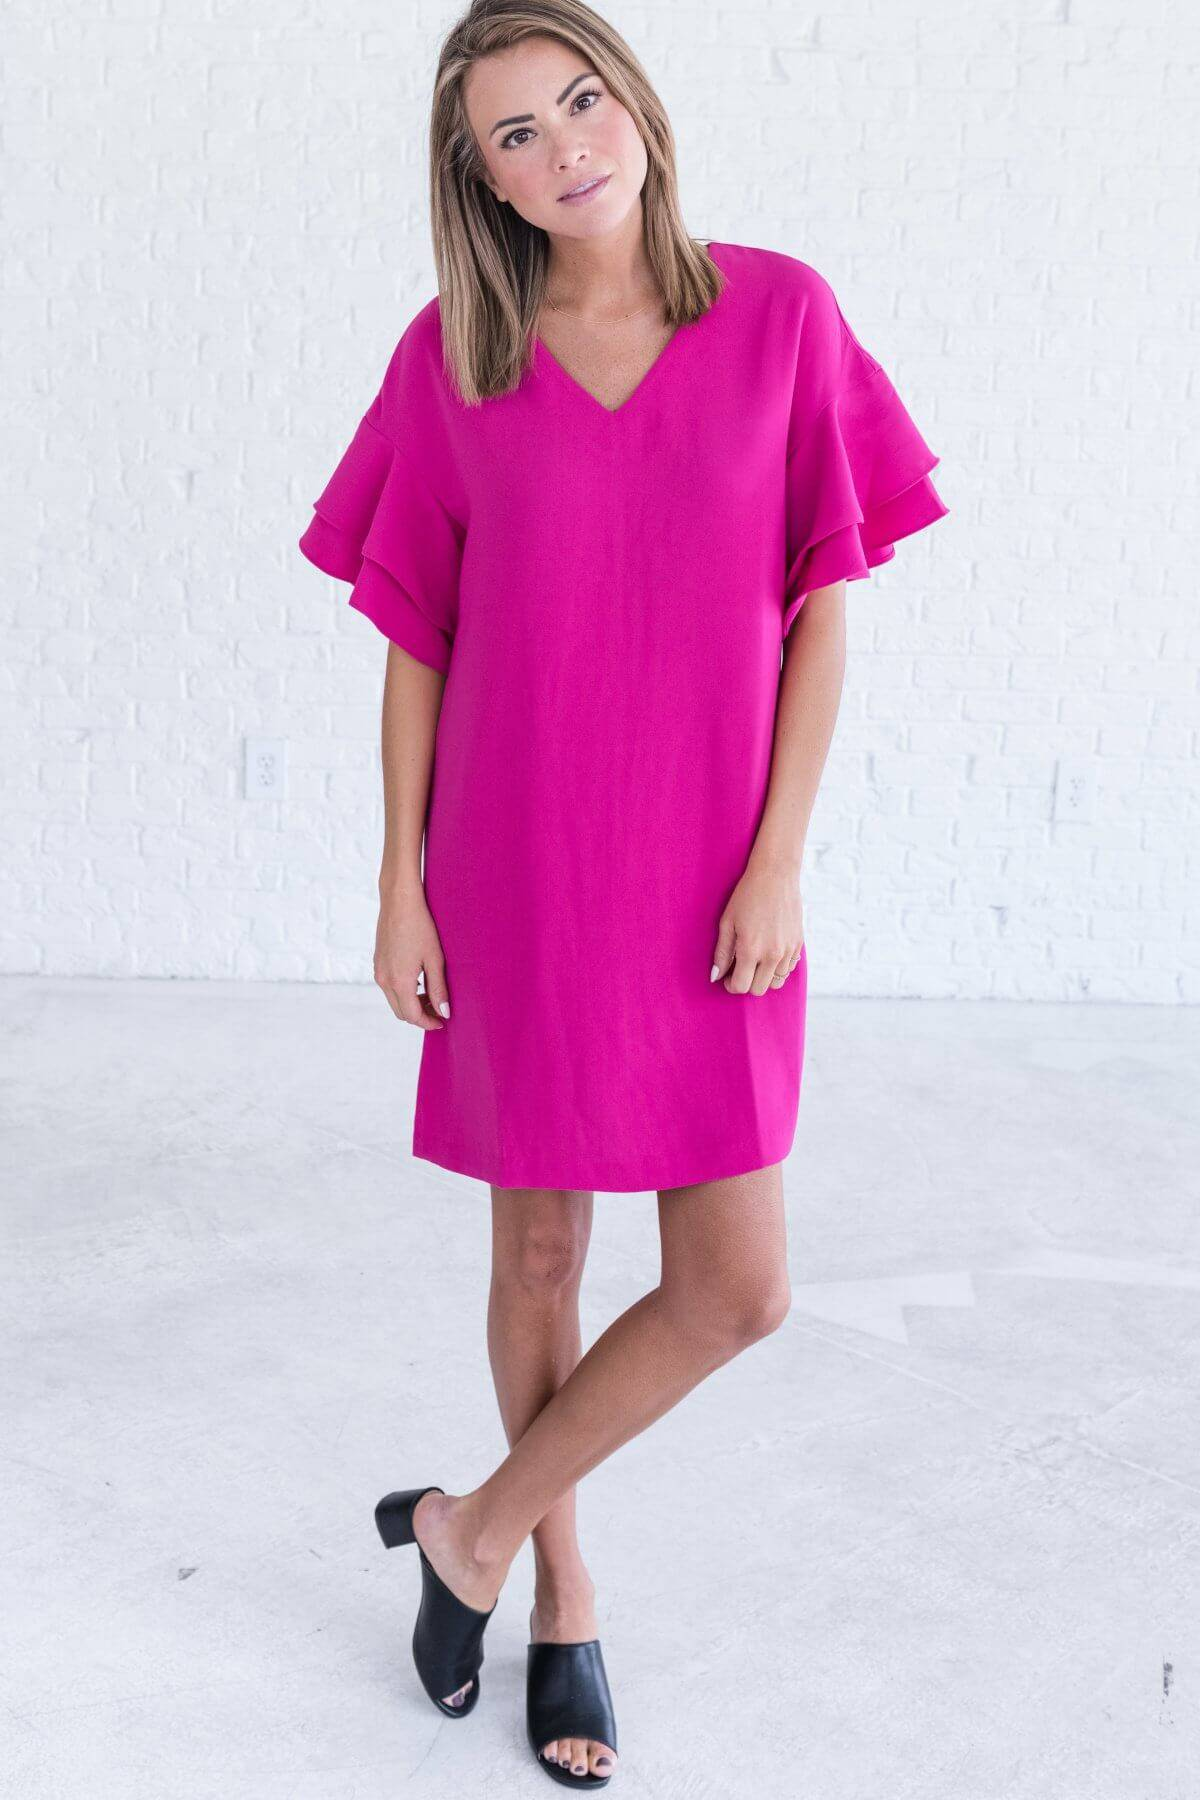 Hot Pink Fuchsia Mini Dress with Ruffled Sleeves Dresses Business Casual for Women